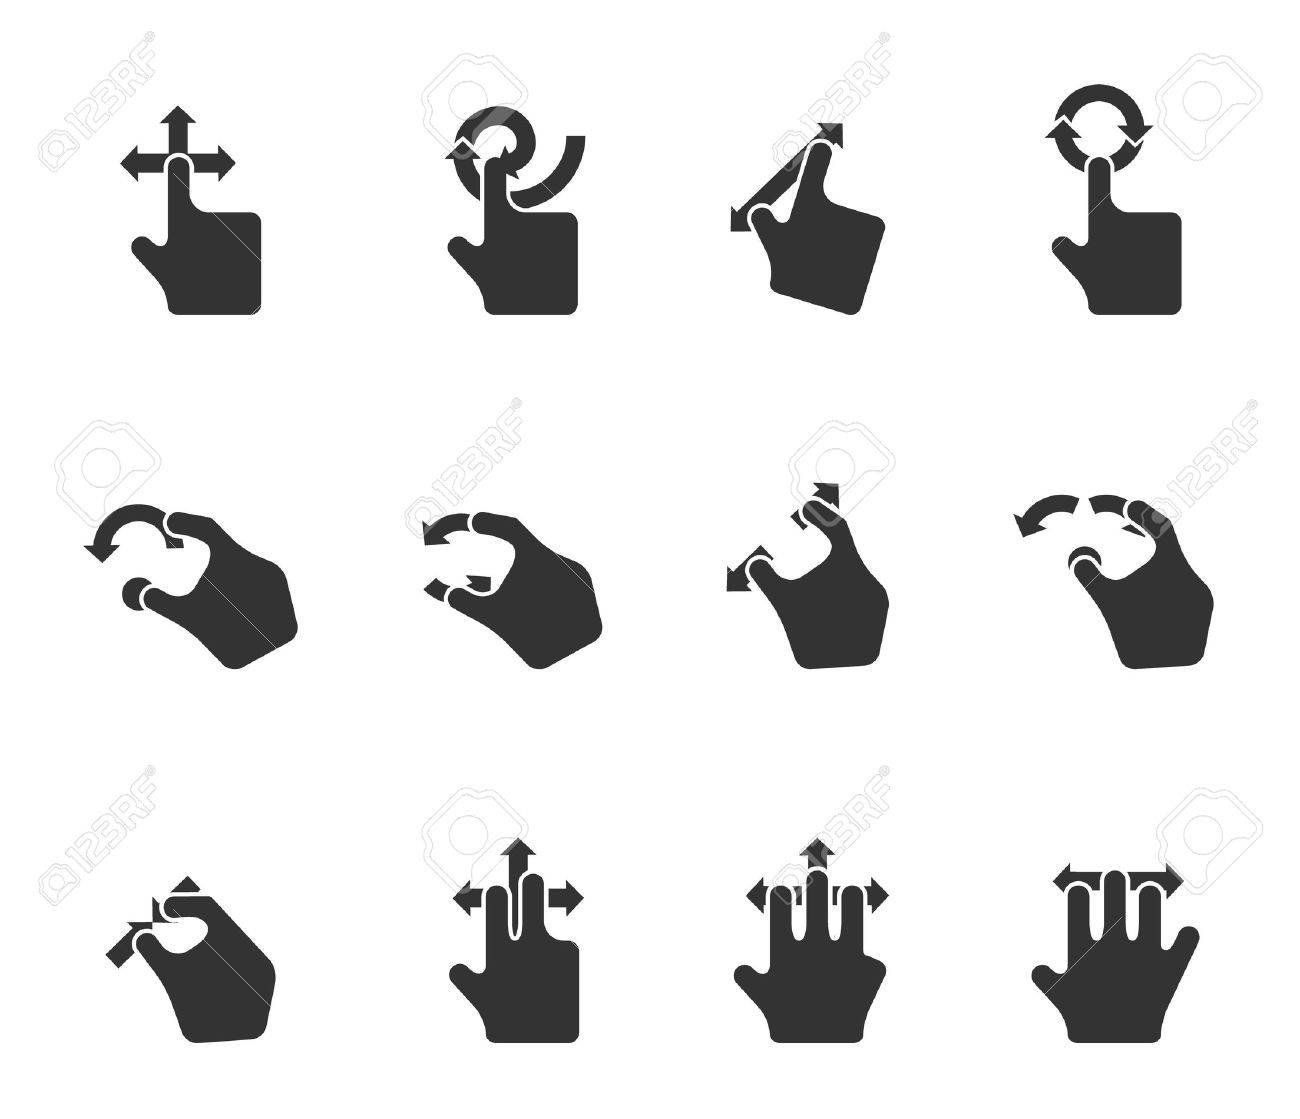 Single Color Icons - Trackpad Gestures Stock Vector - 12861620